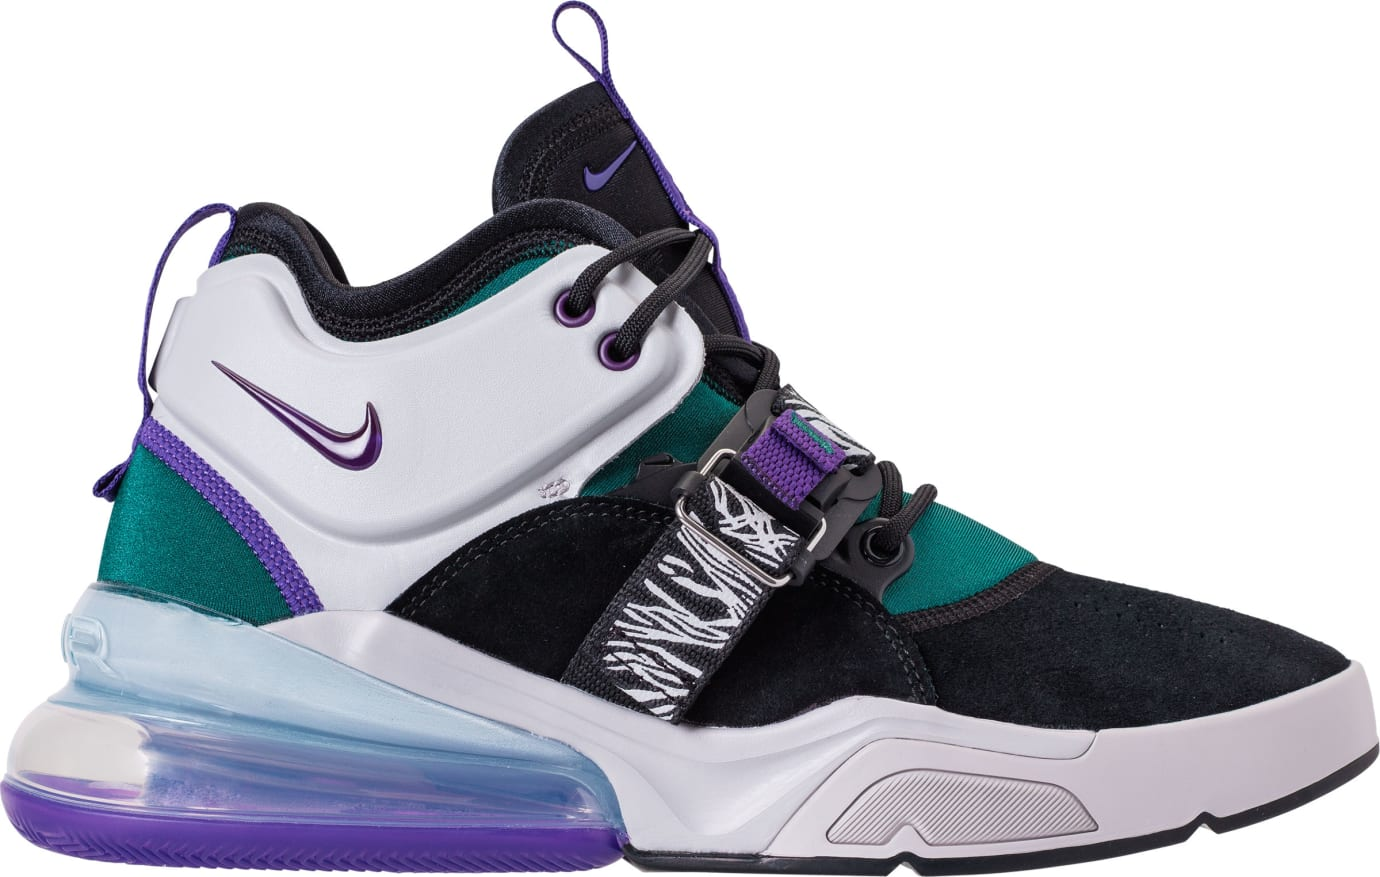 cc13ae7445 Nike Air Force 270 Carnivore Release Date AH6772-005 | Sole Collector